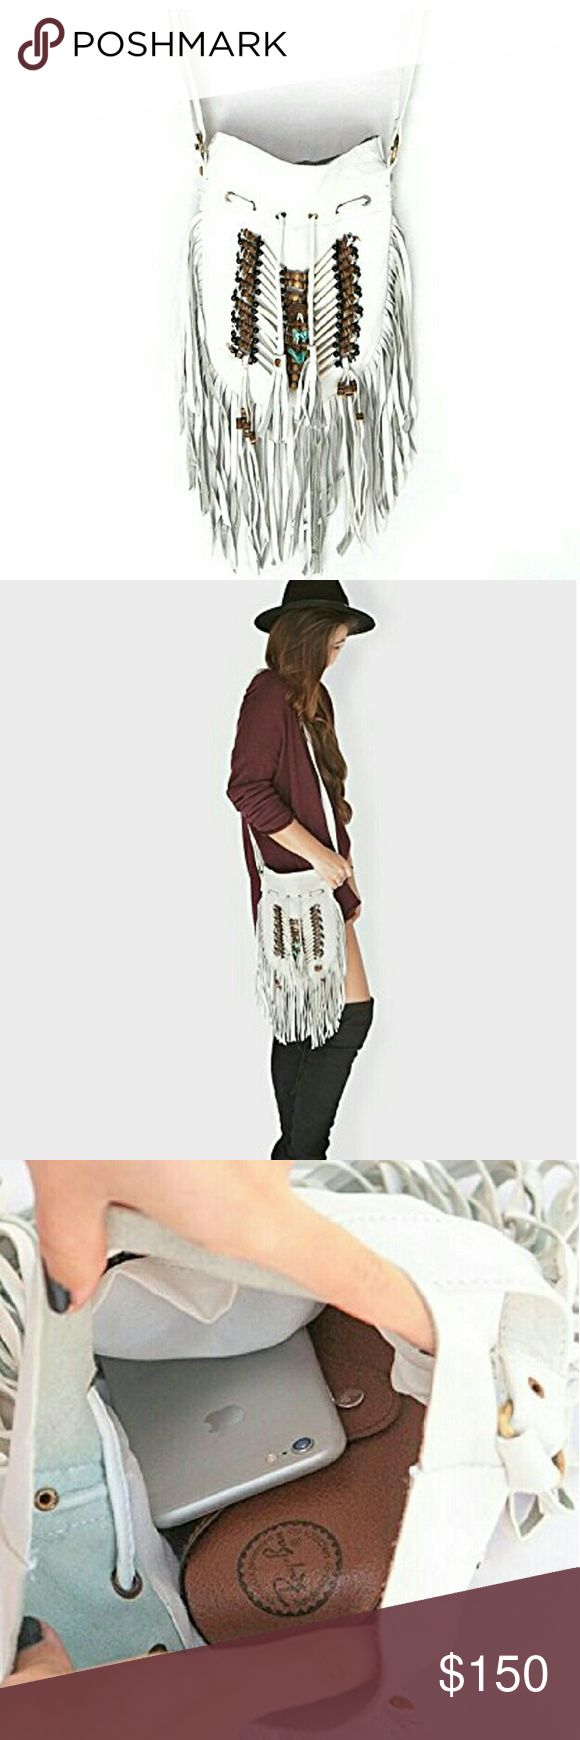 White Indian dream celibrity hobo leather handbag This is not the cheap one high quality   Boho Bag Round S | Real Leather | Fringe Purse | Bohemian Bags with bead work people will notice you when you walk in the room The soft exterior leather of this 100% handmade hobo bag offers timeless style with quality finishes at an affordable price. The interior is incredibly spacious giving you enough room to store items for all your daily essentials. Simply an awesome leather bag to add some summer…